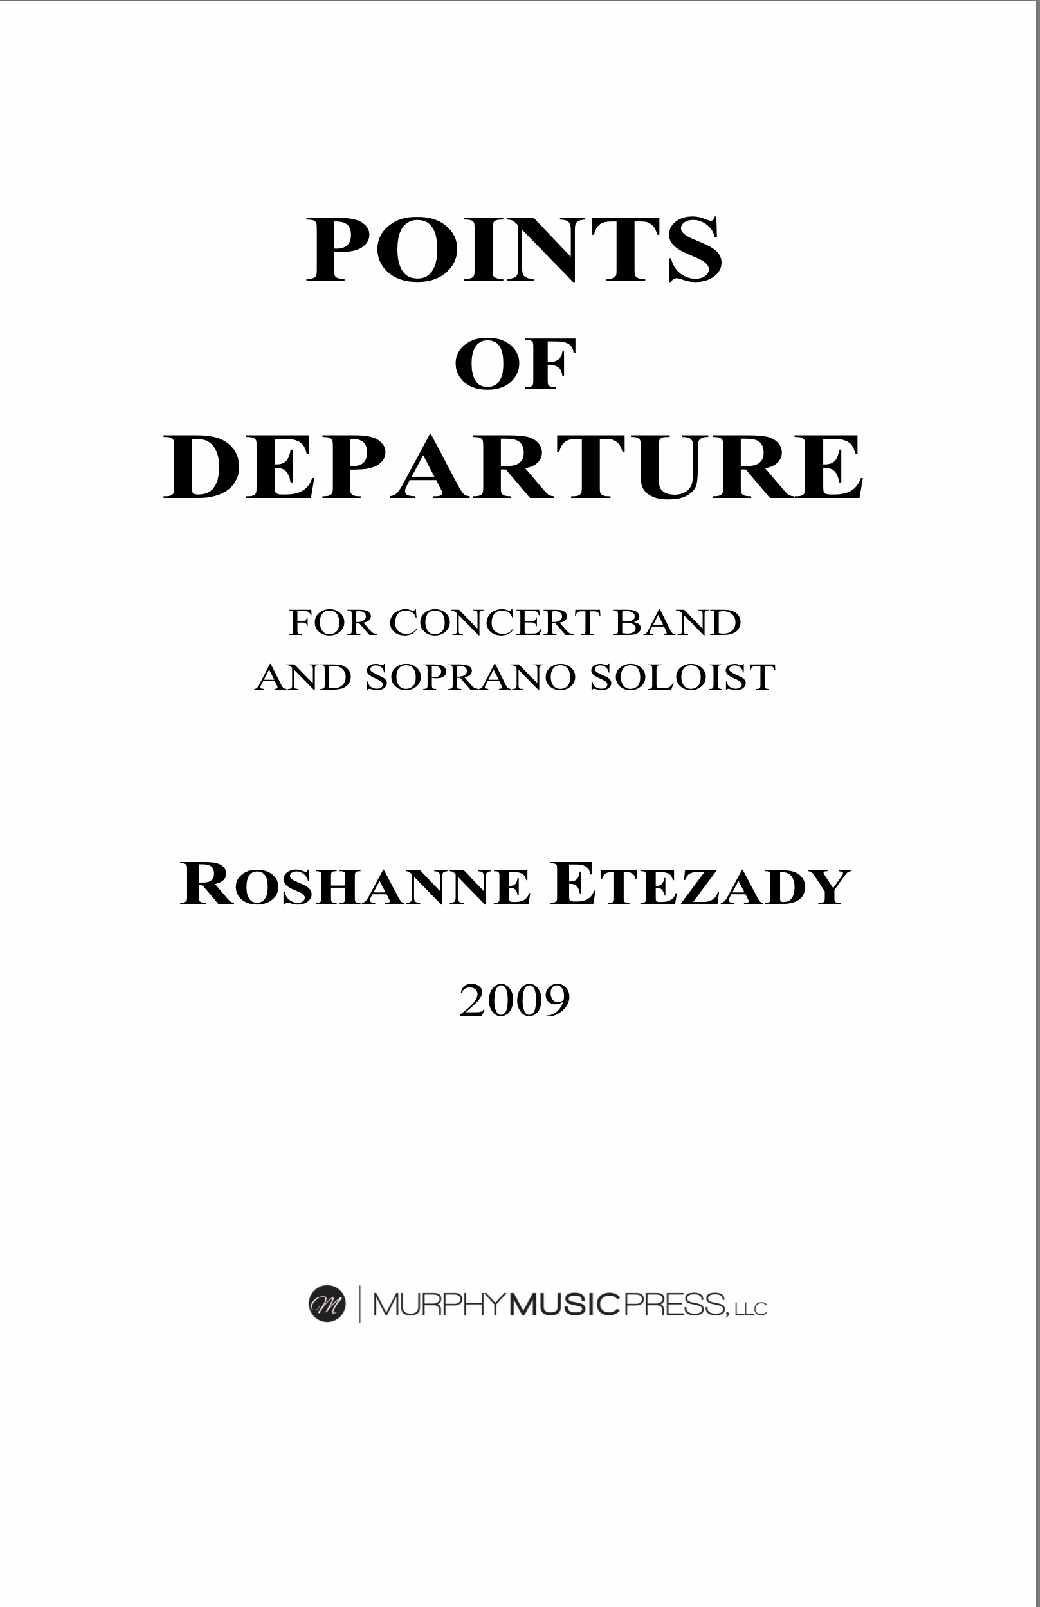 Points Of Departure (Score Only) by Roshanne Etezady